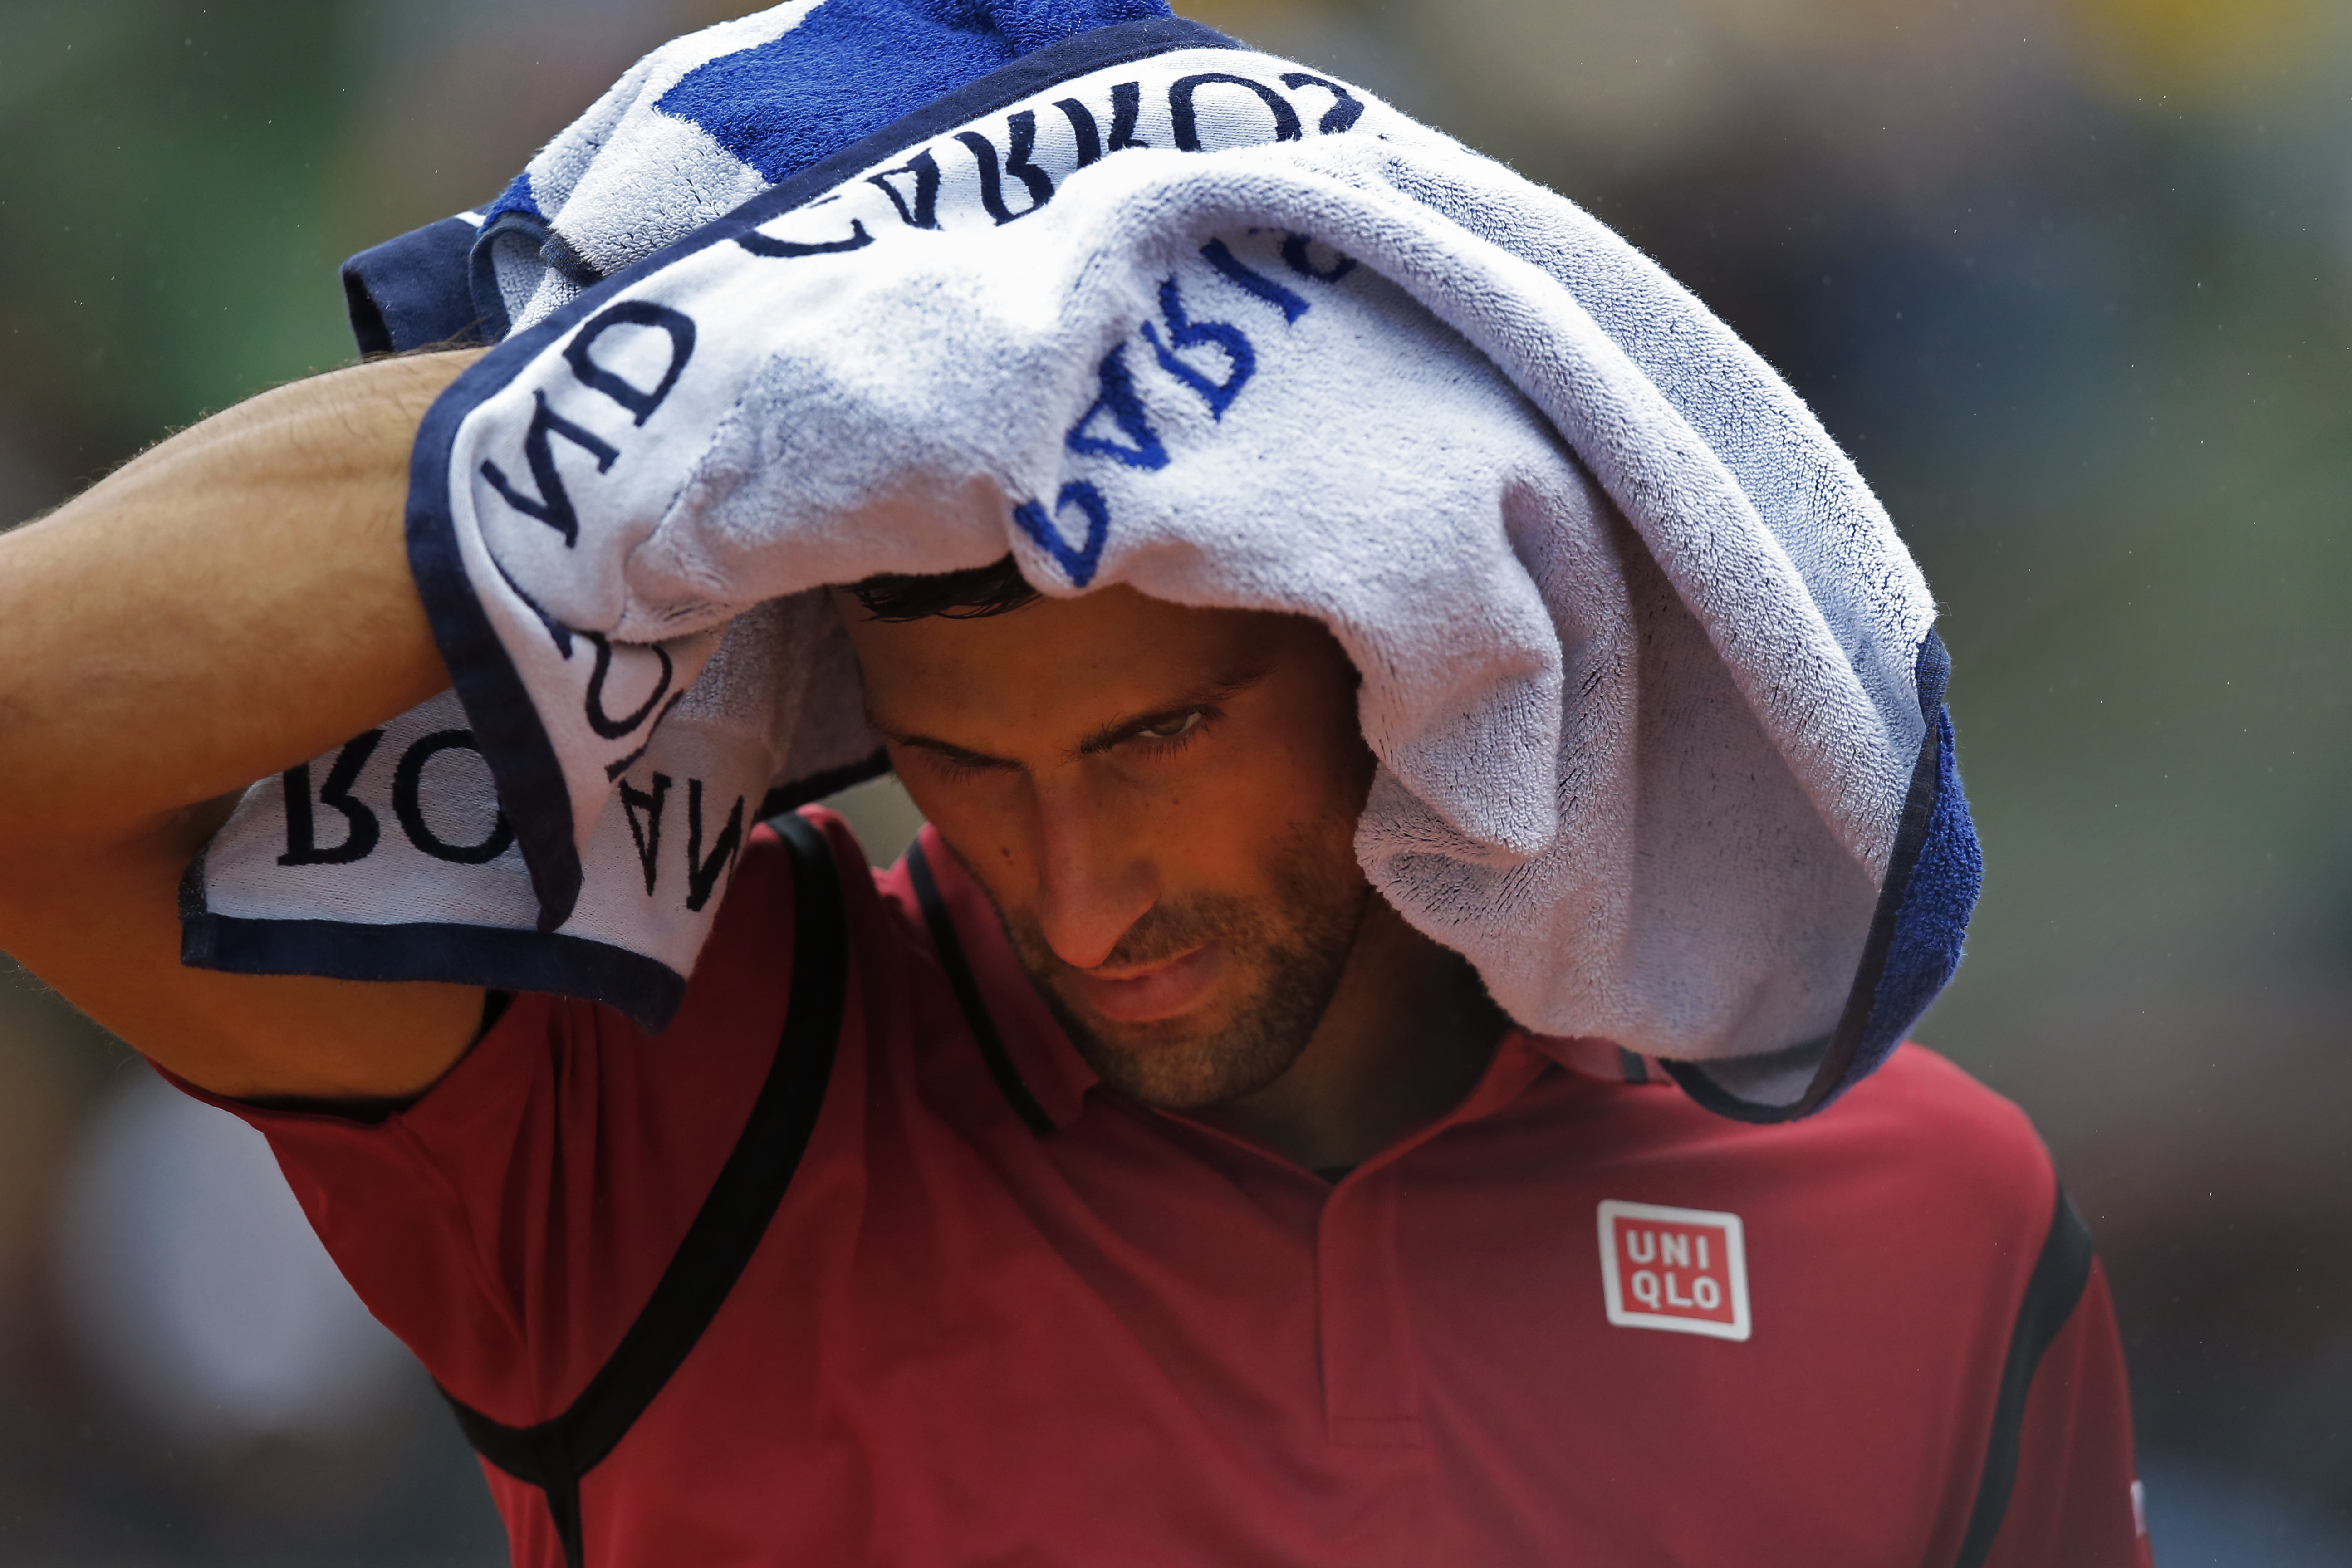 Serbia's Novak Djokovic covers his head minutes before the fourth round match of the French Open tennis tournament against Spains Roberto Bautista Agut was suspended for the second time because of the rain at the Roland Garros stadium in Paris, France, Tu